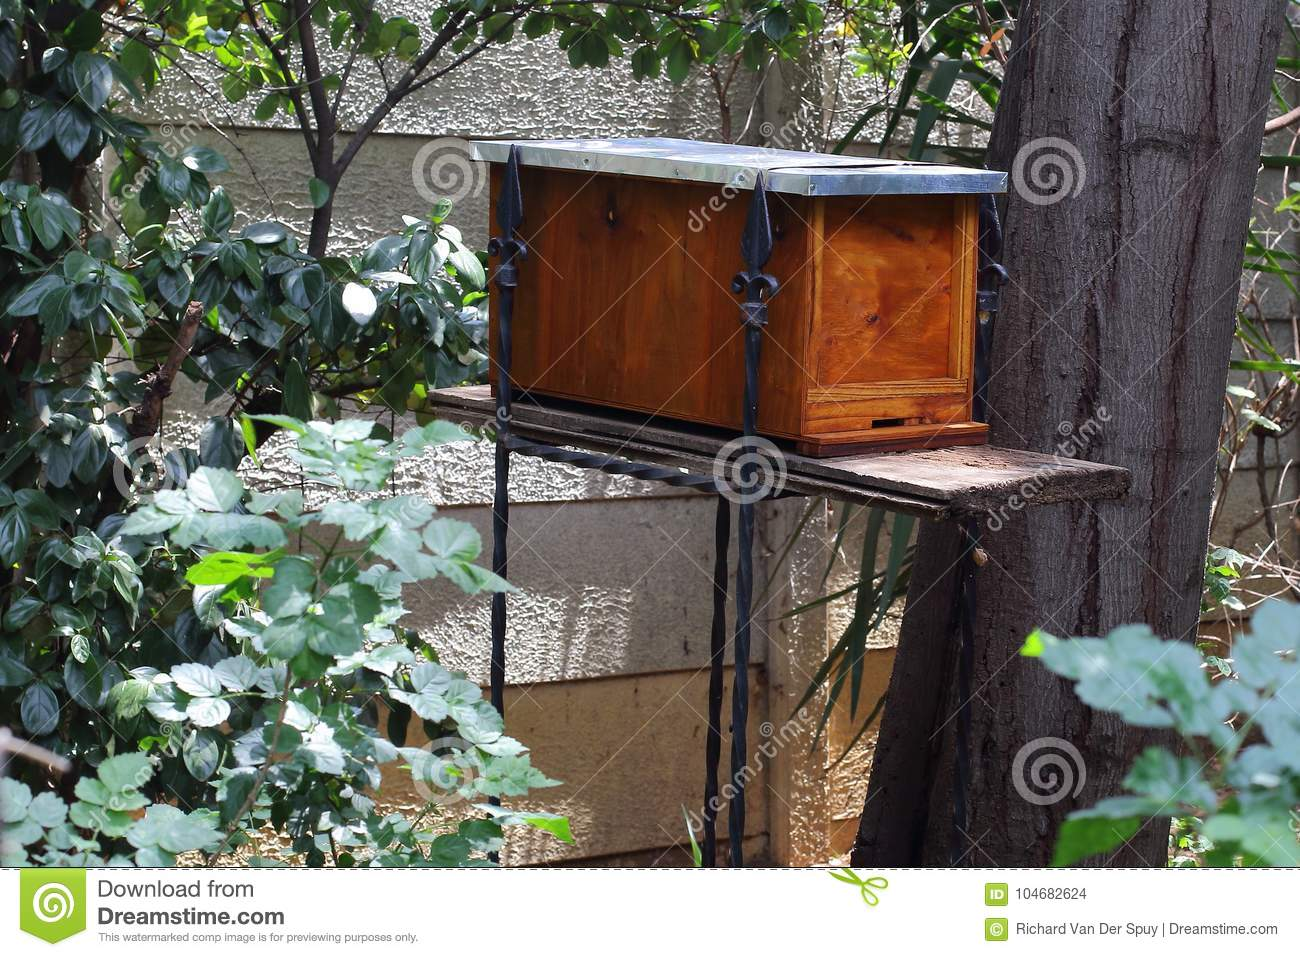 Swarm trap for honey bees